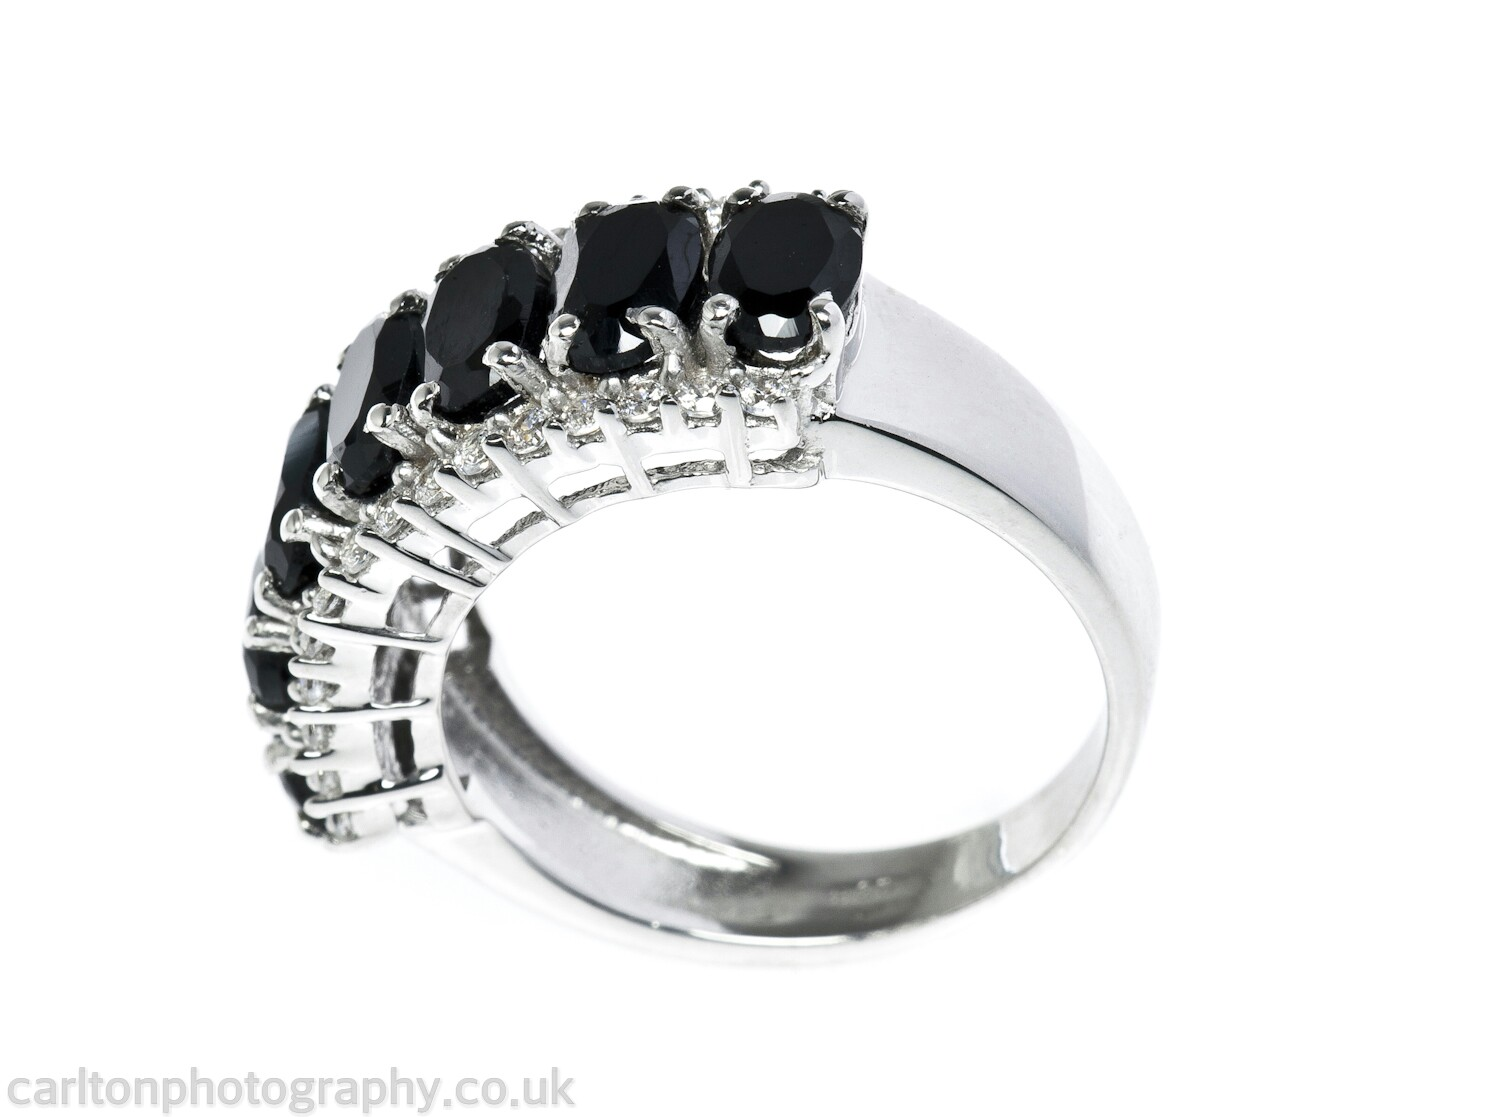 jewellery photography in cheshire and in manchester